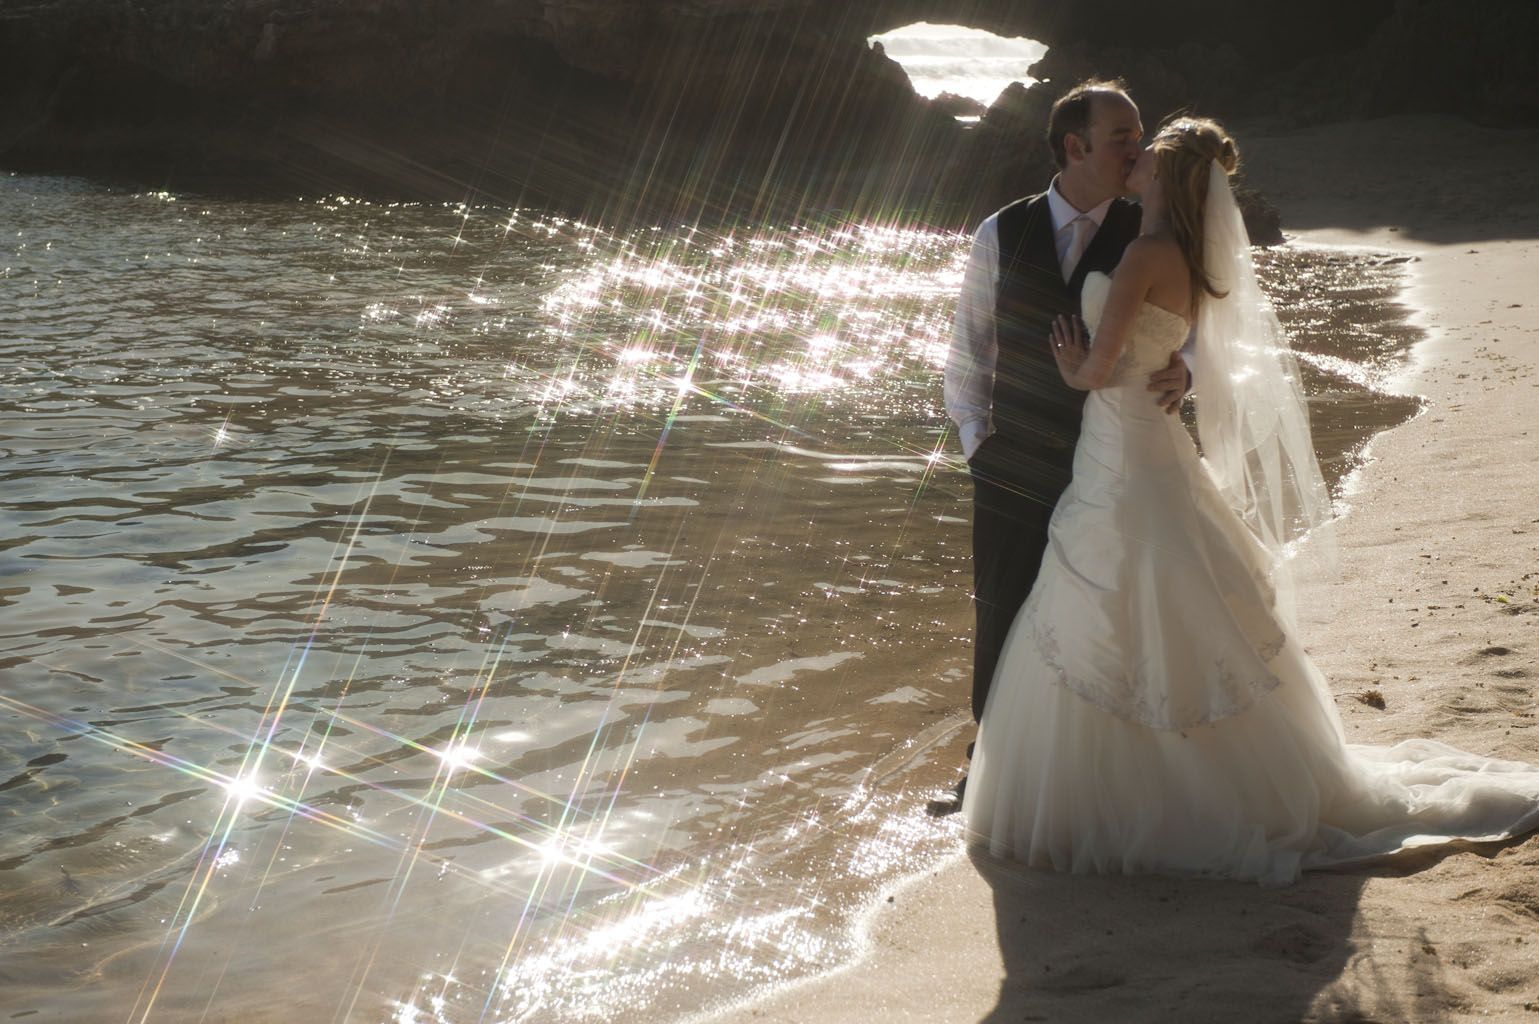 A portrait by wedding photographers melbourne, showing newlyweds by the sparkling waters of a Mornington Peninsula beach, Australia.